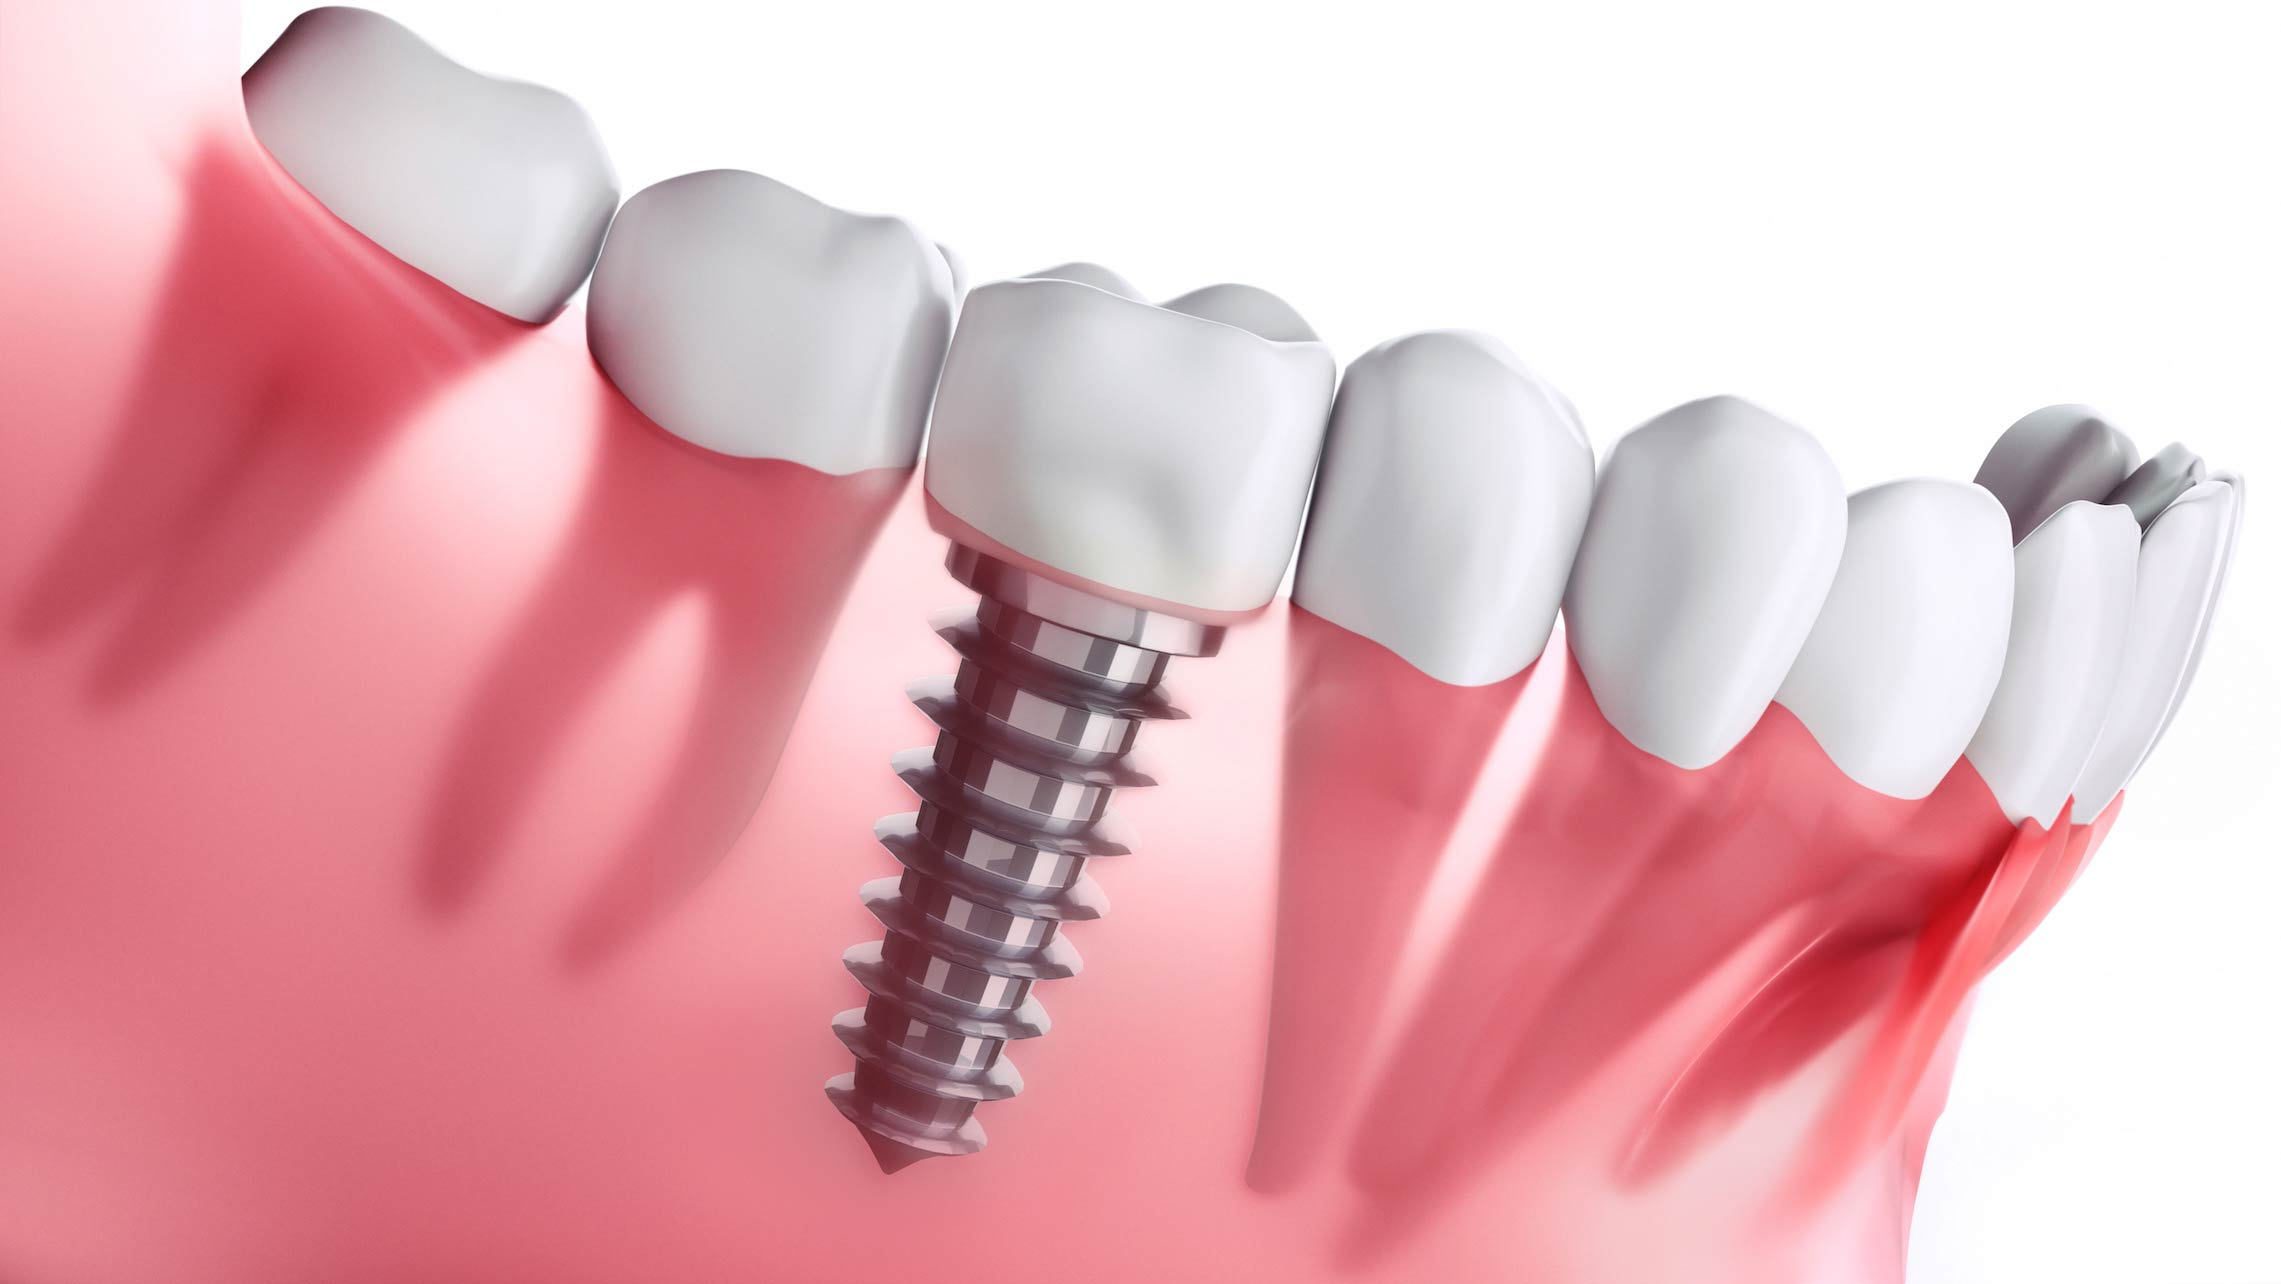 Dental Implants Procedure Explained - District Dentistry Charlotte